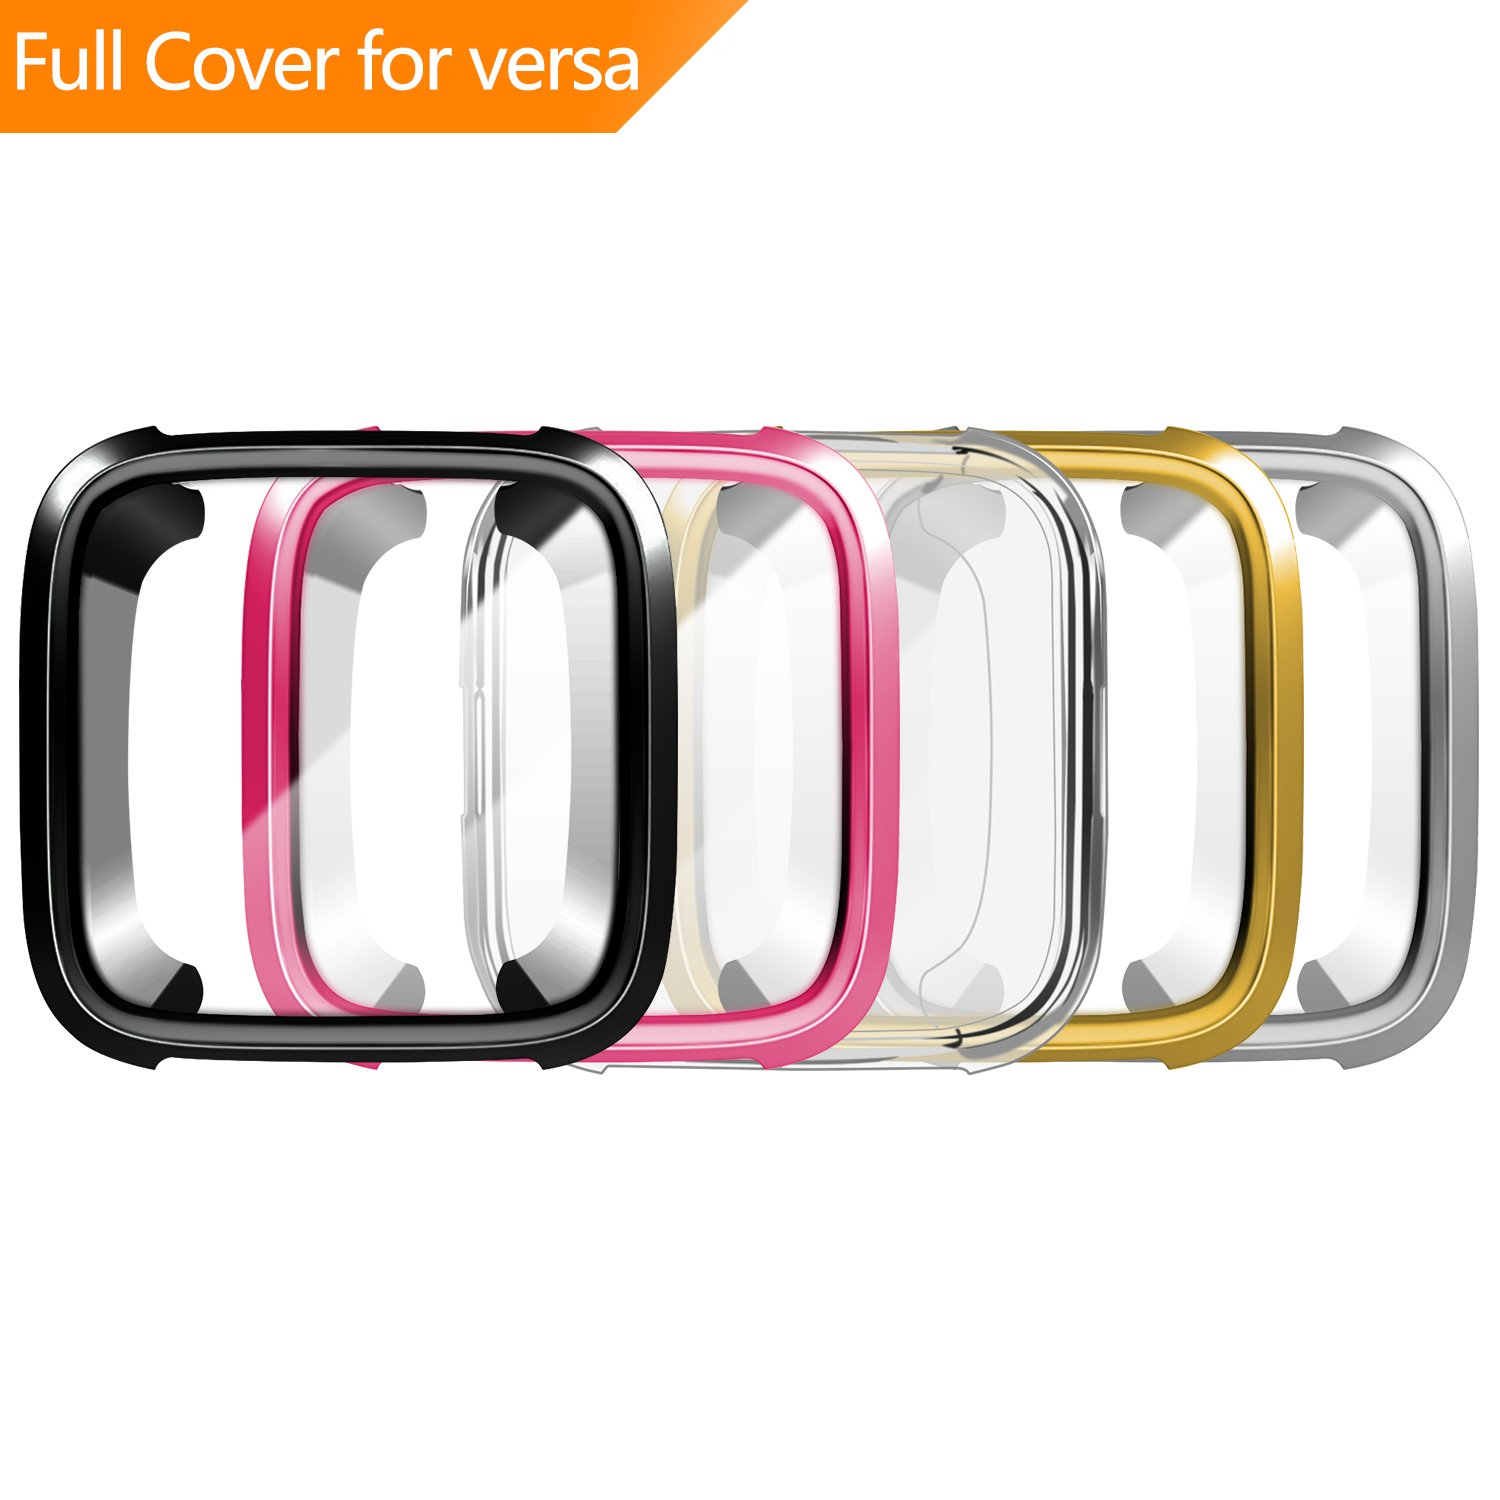 [New Version] Case for Fitbit Versa,Soft TPU Protective Full Cover Shell Bumper Case Protector for Fitbit Versa Smartwatch - 5 Packs